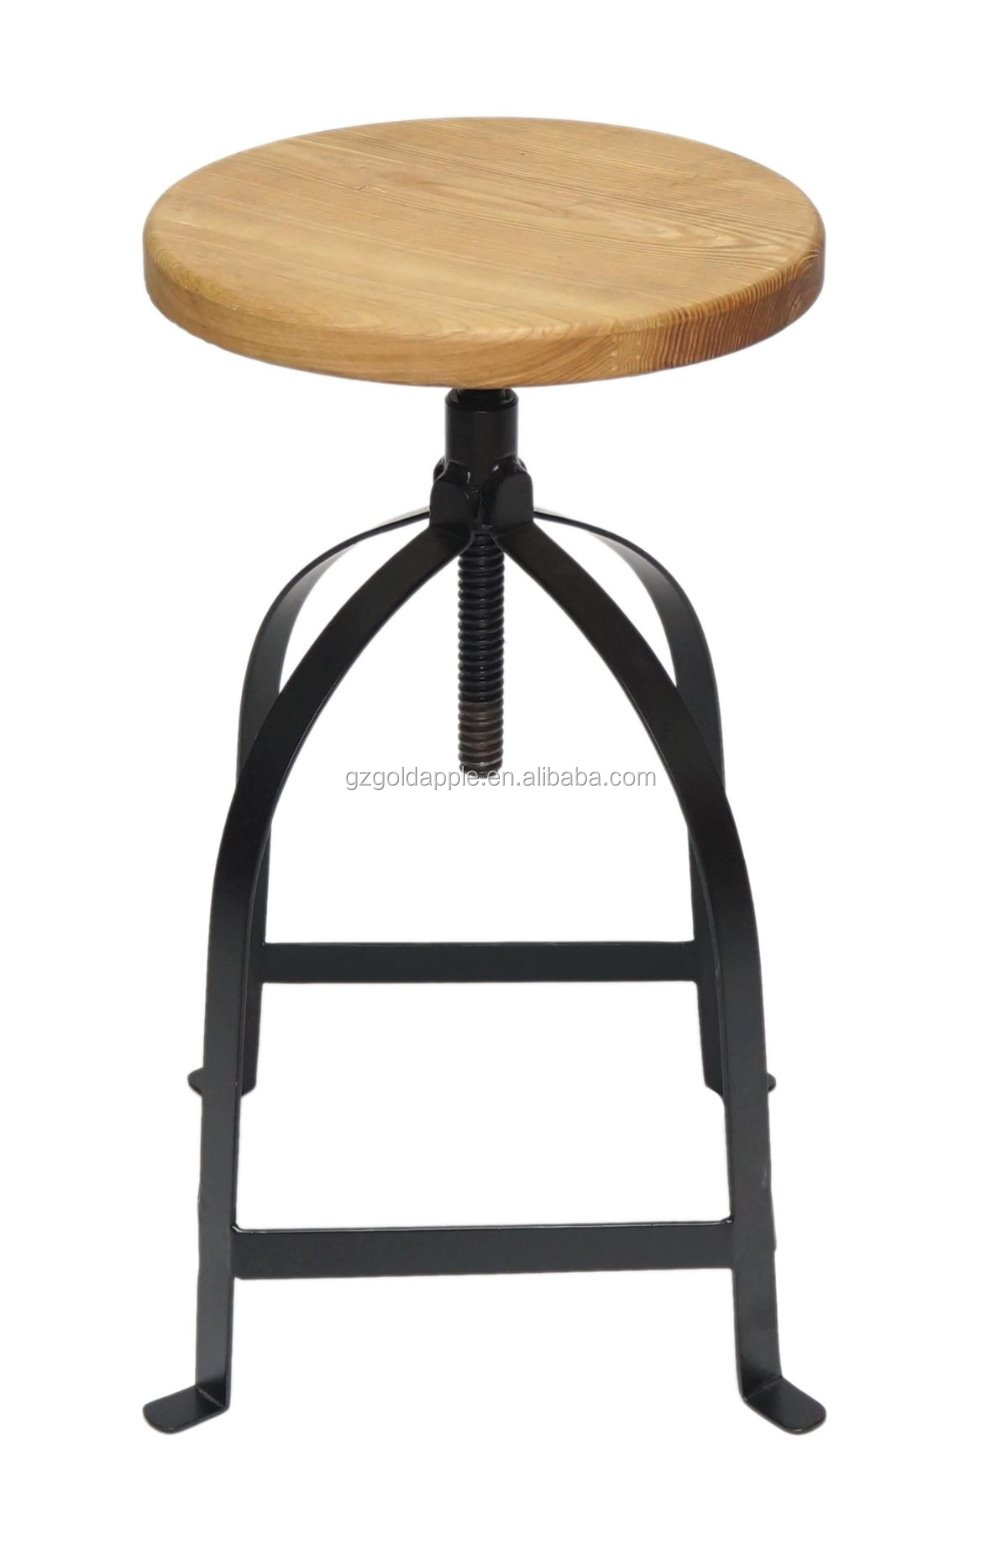 2015 Vintage Bar Chair Metal Industrial With Adjustable Ash Wood Seat Bar Stool Buy Antique